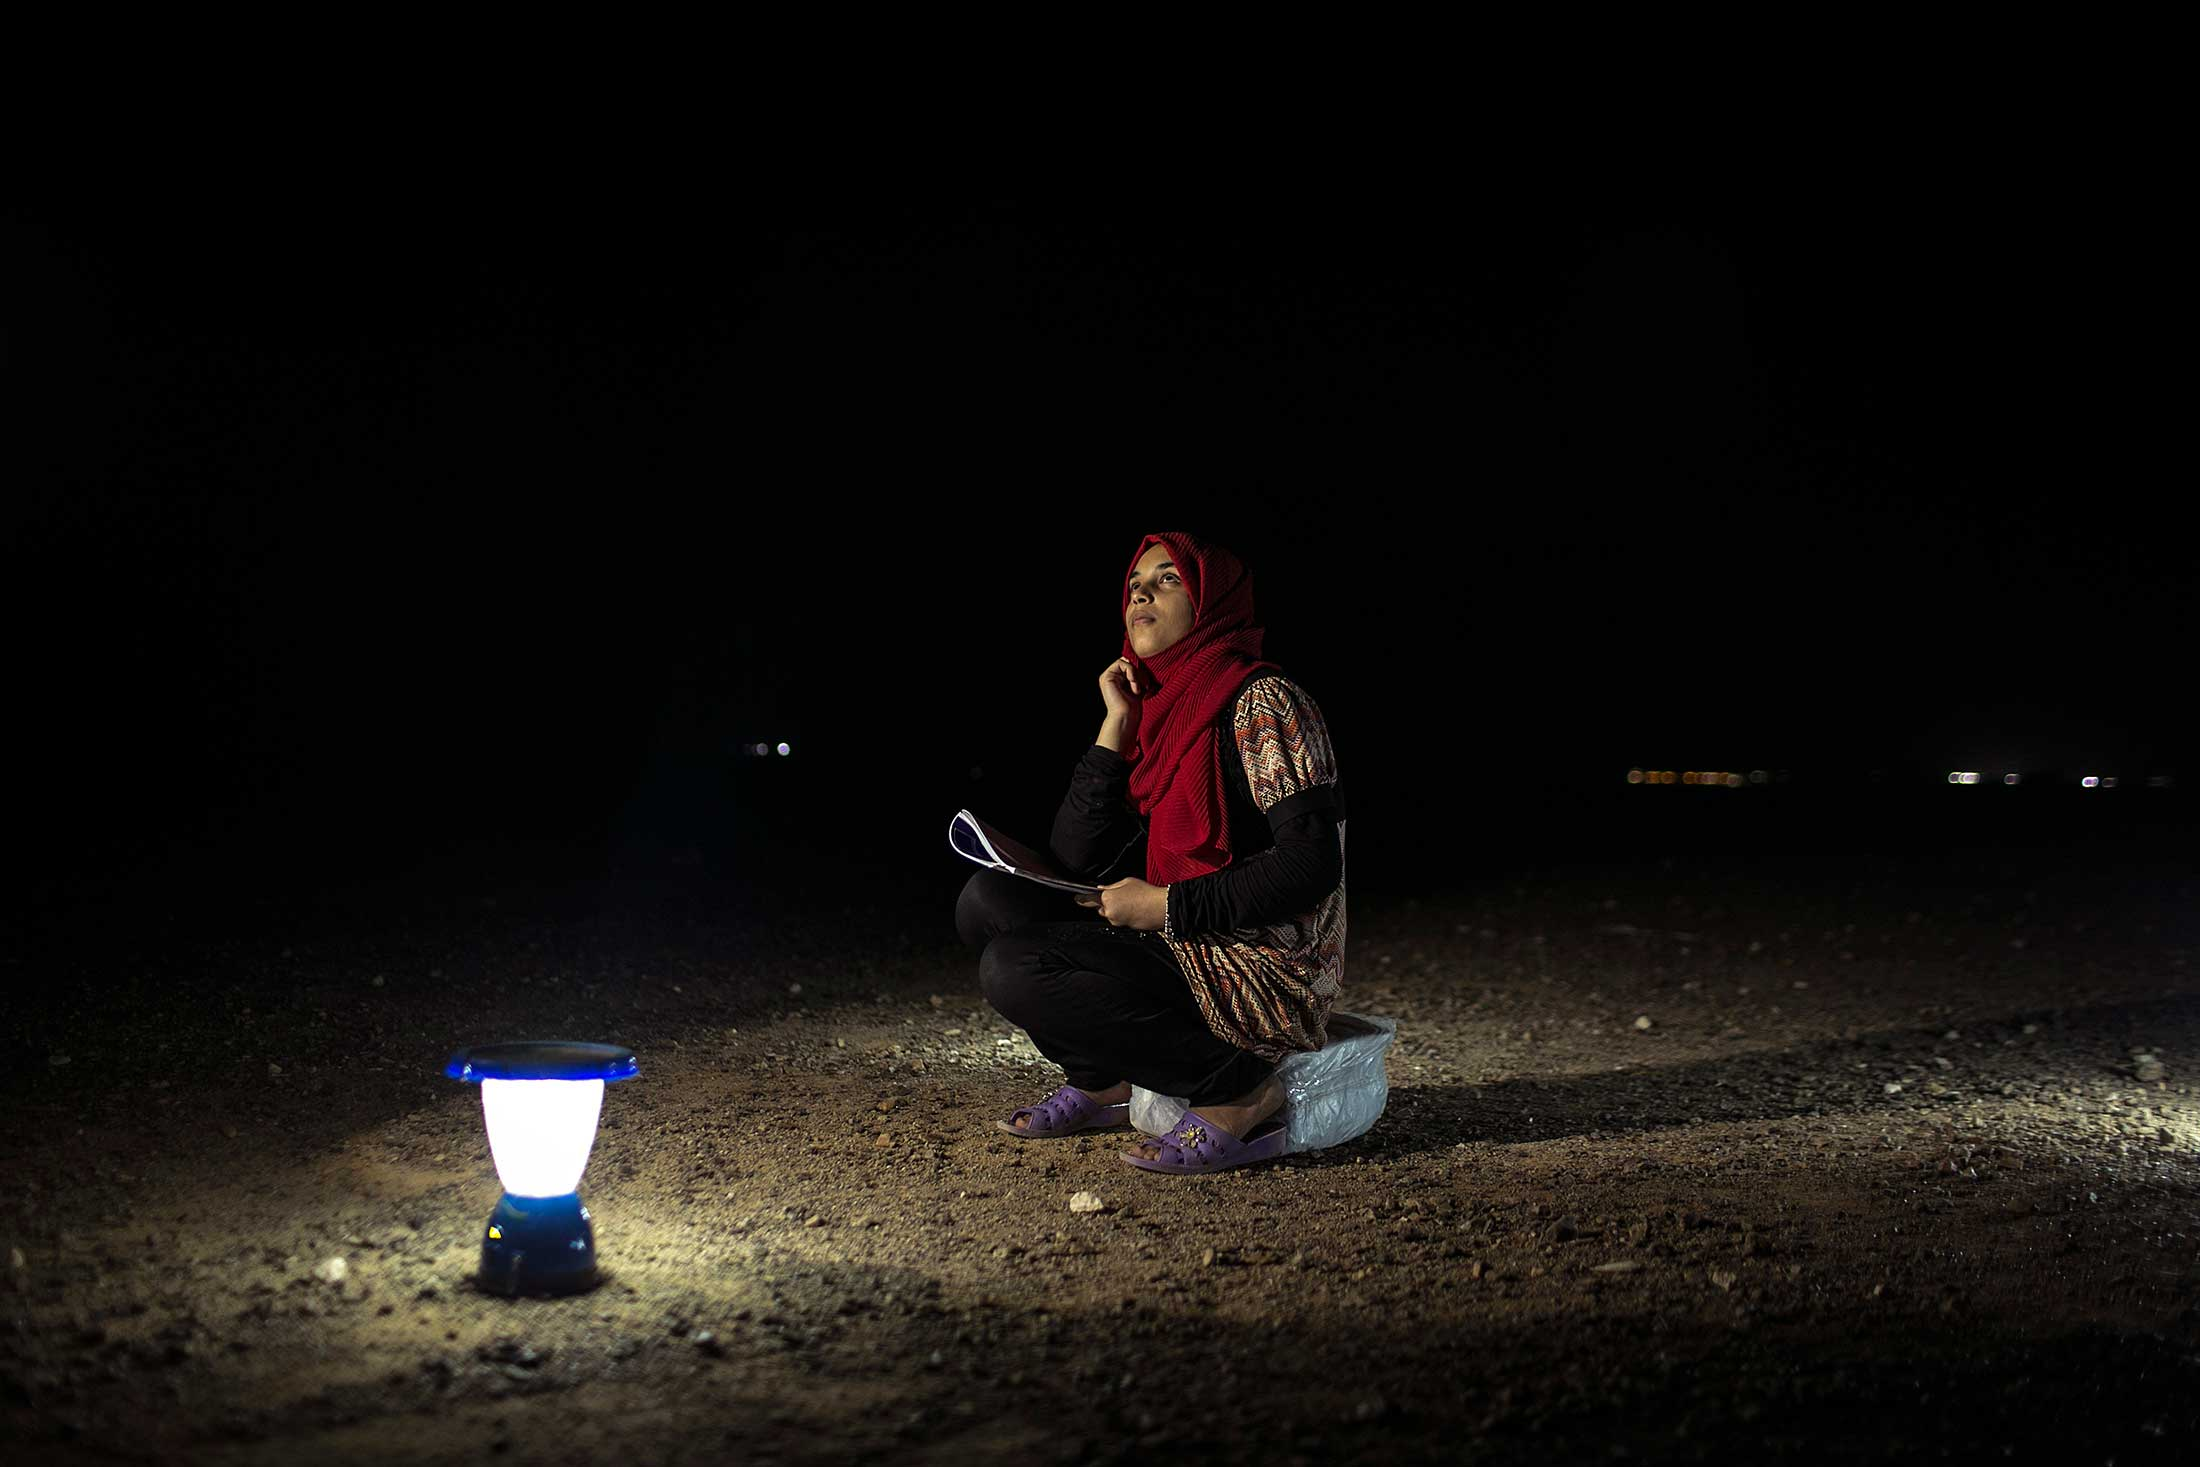 Fifteen-year-old Budoor (which means full moon in Arabic) sketches the night sky in Azraq refugee camp.